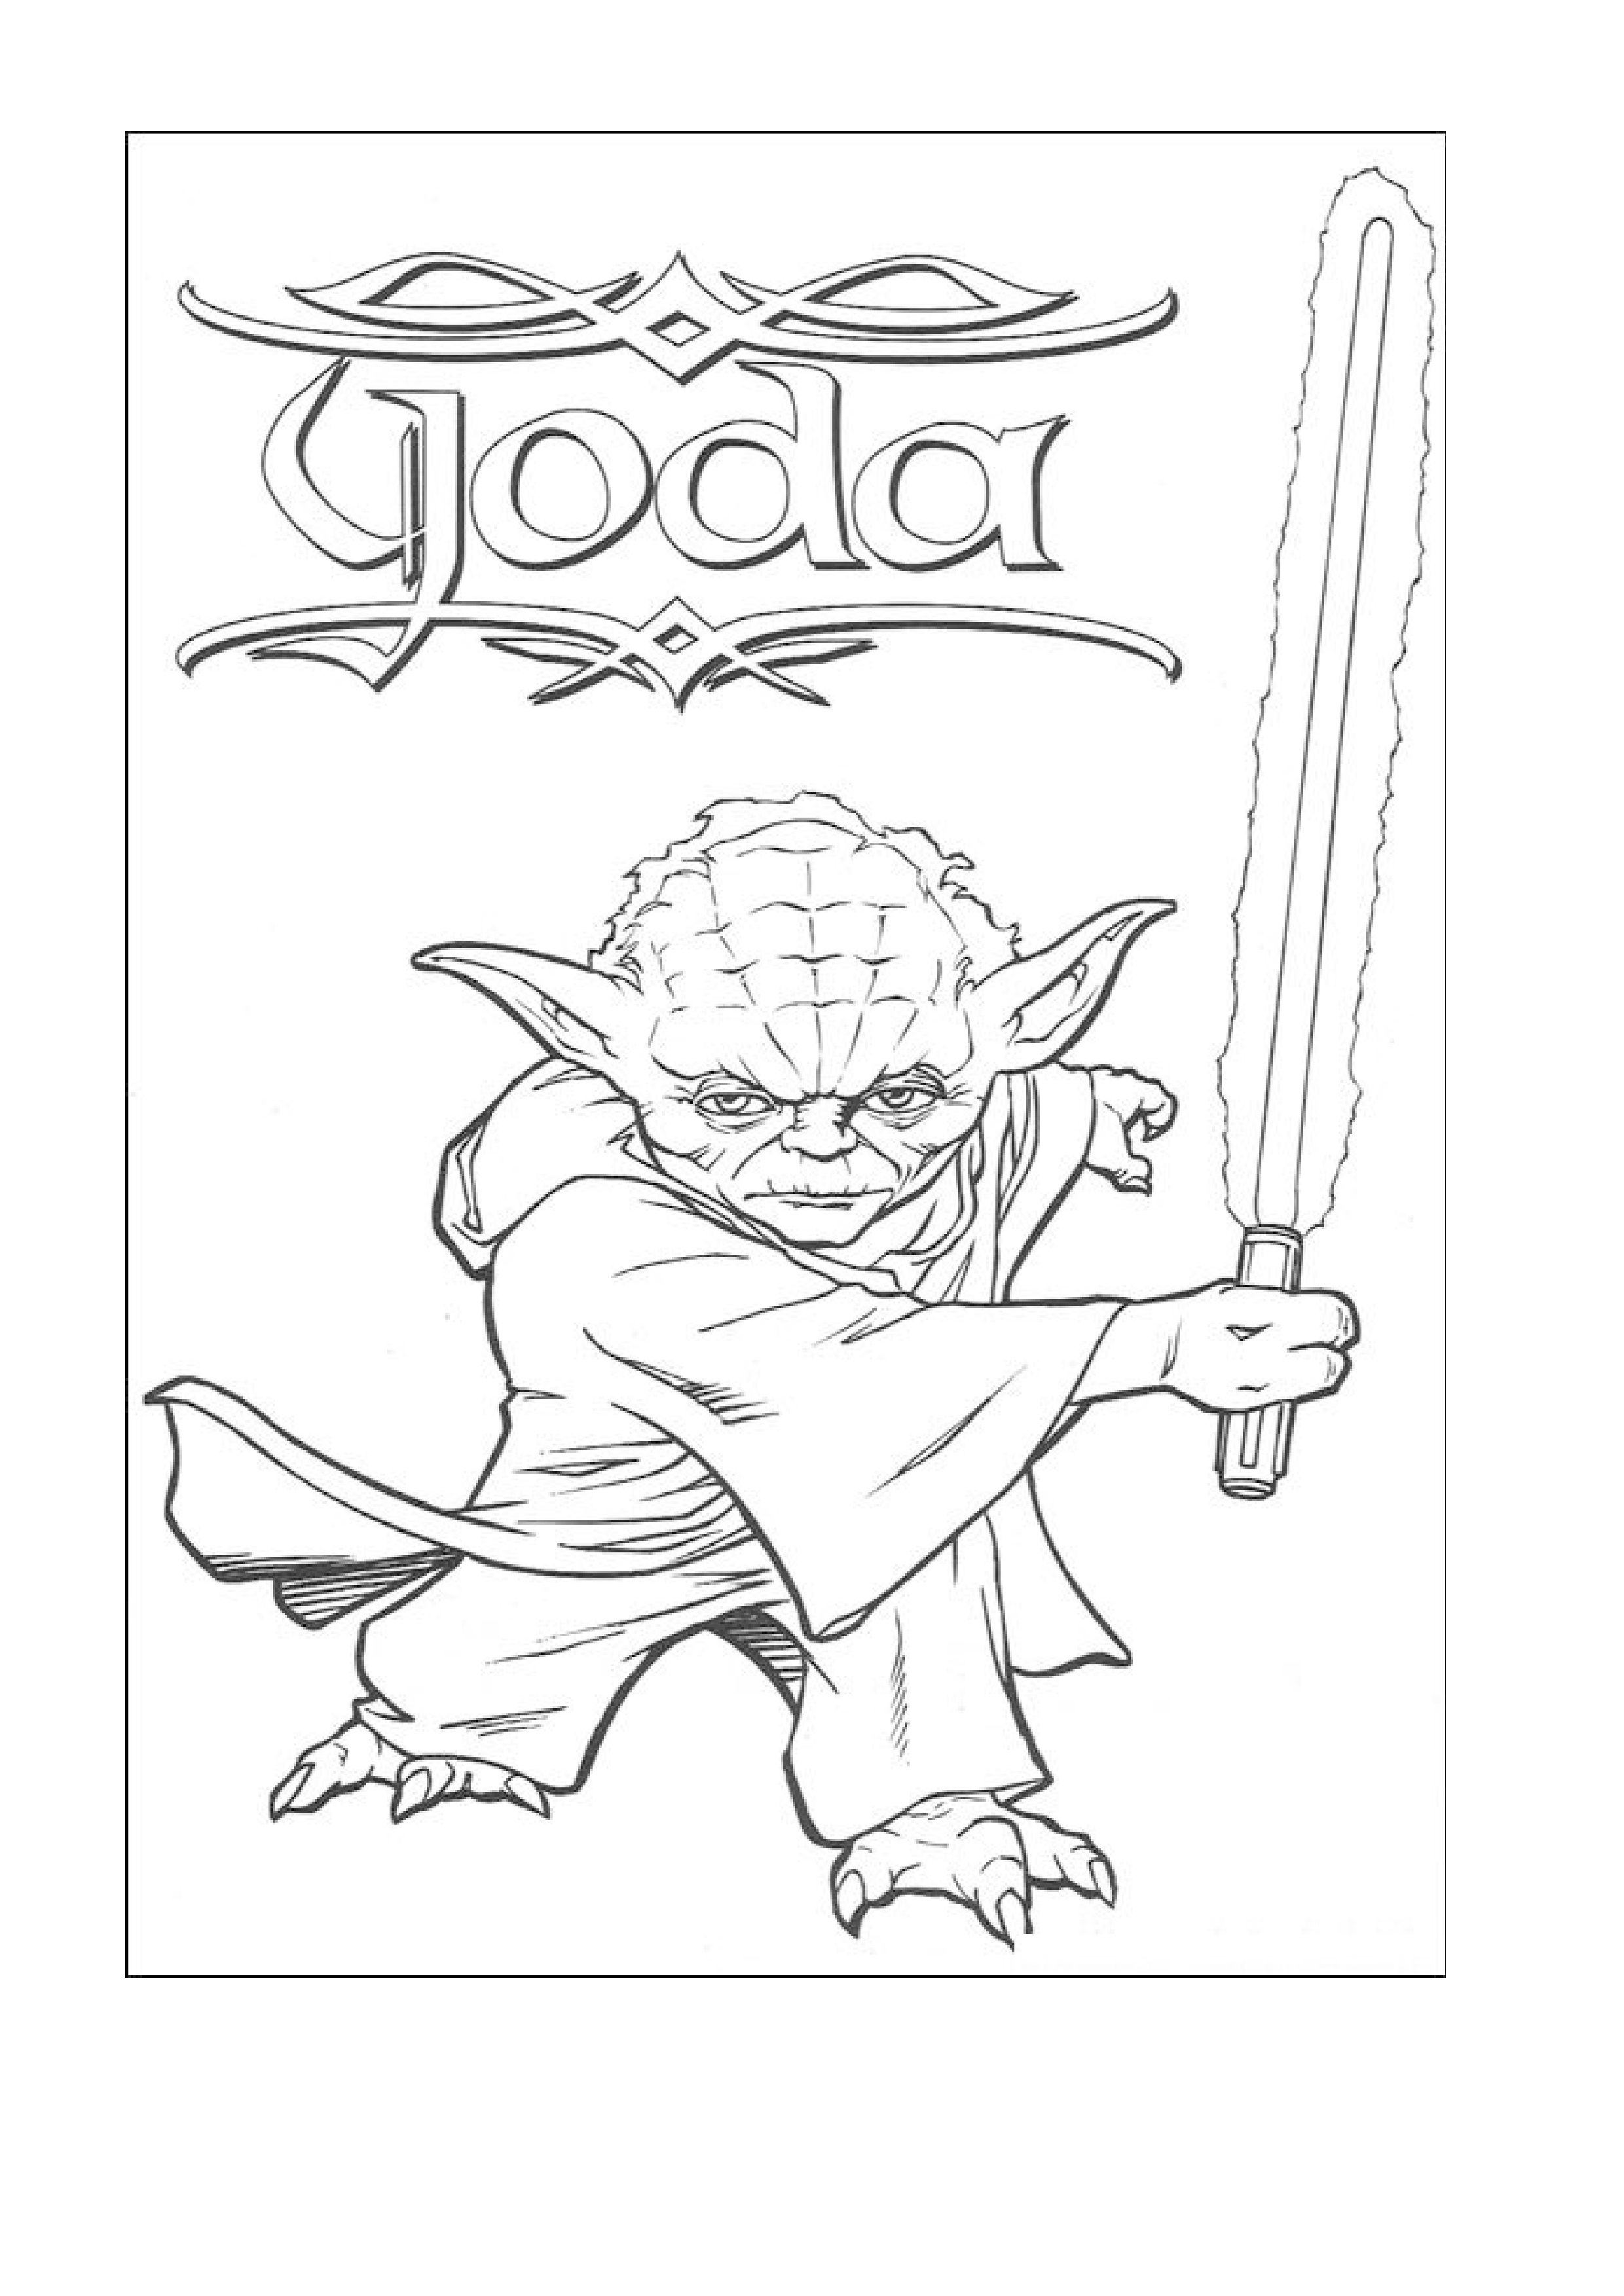 Chopper Star Wars Coloring Pages. Printable Star Wars Coloring Pages For Kids  Pinterest